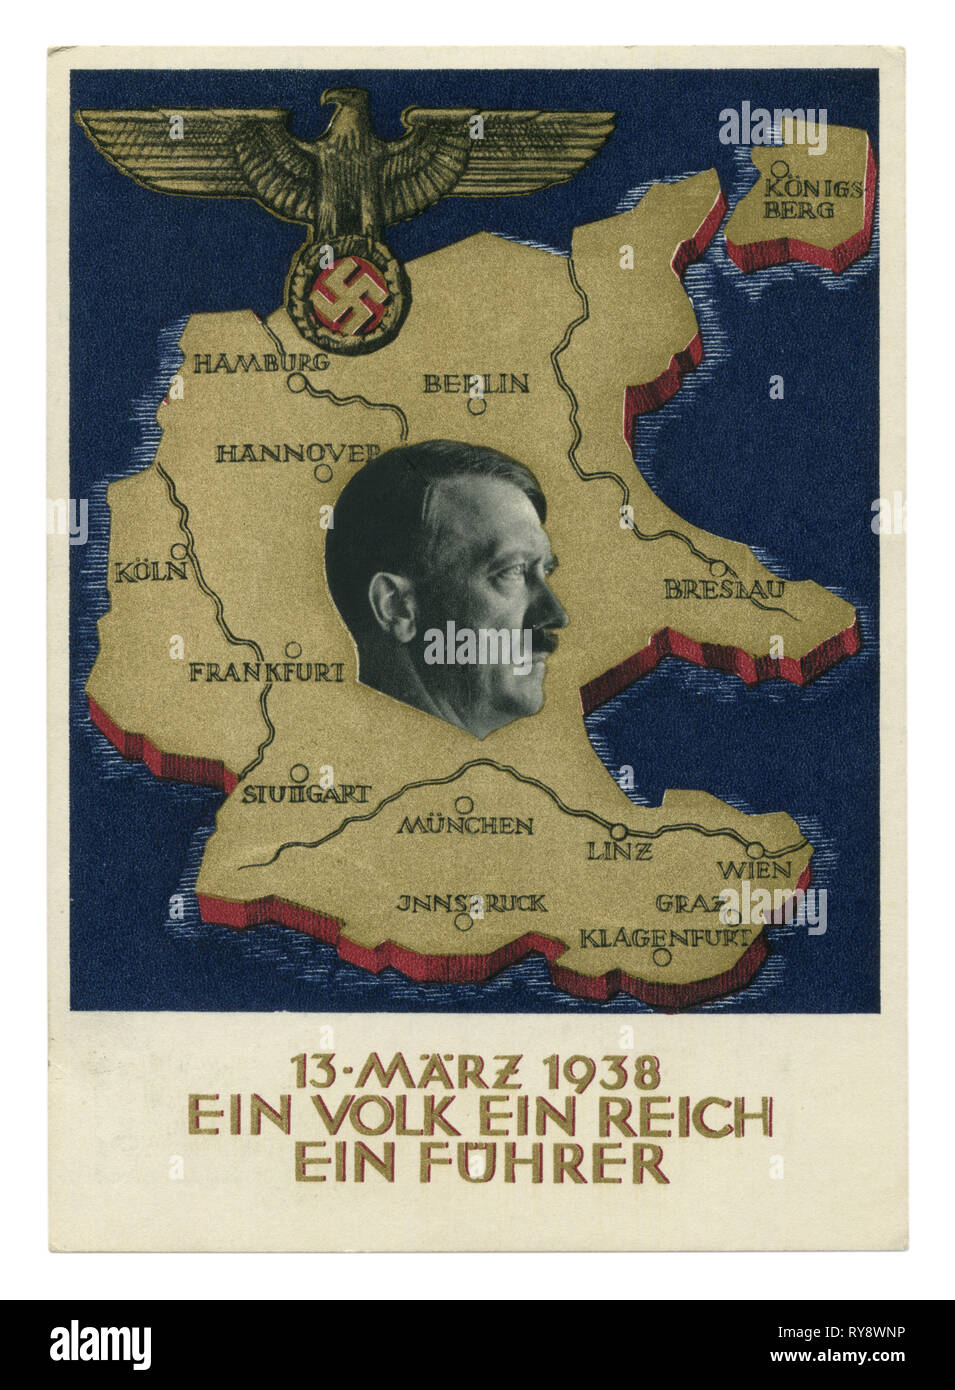 German historical postcard: A plebiscite on the question of the annexation of Austria,  'ein volk ein reich ein führer' 1938, Germany, Third Reich - Stock Image